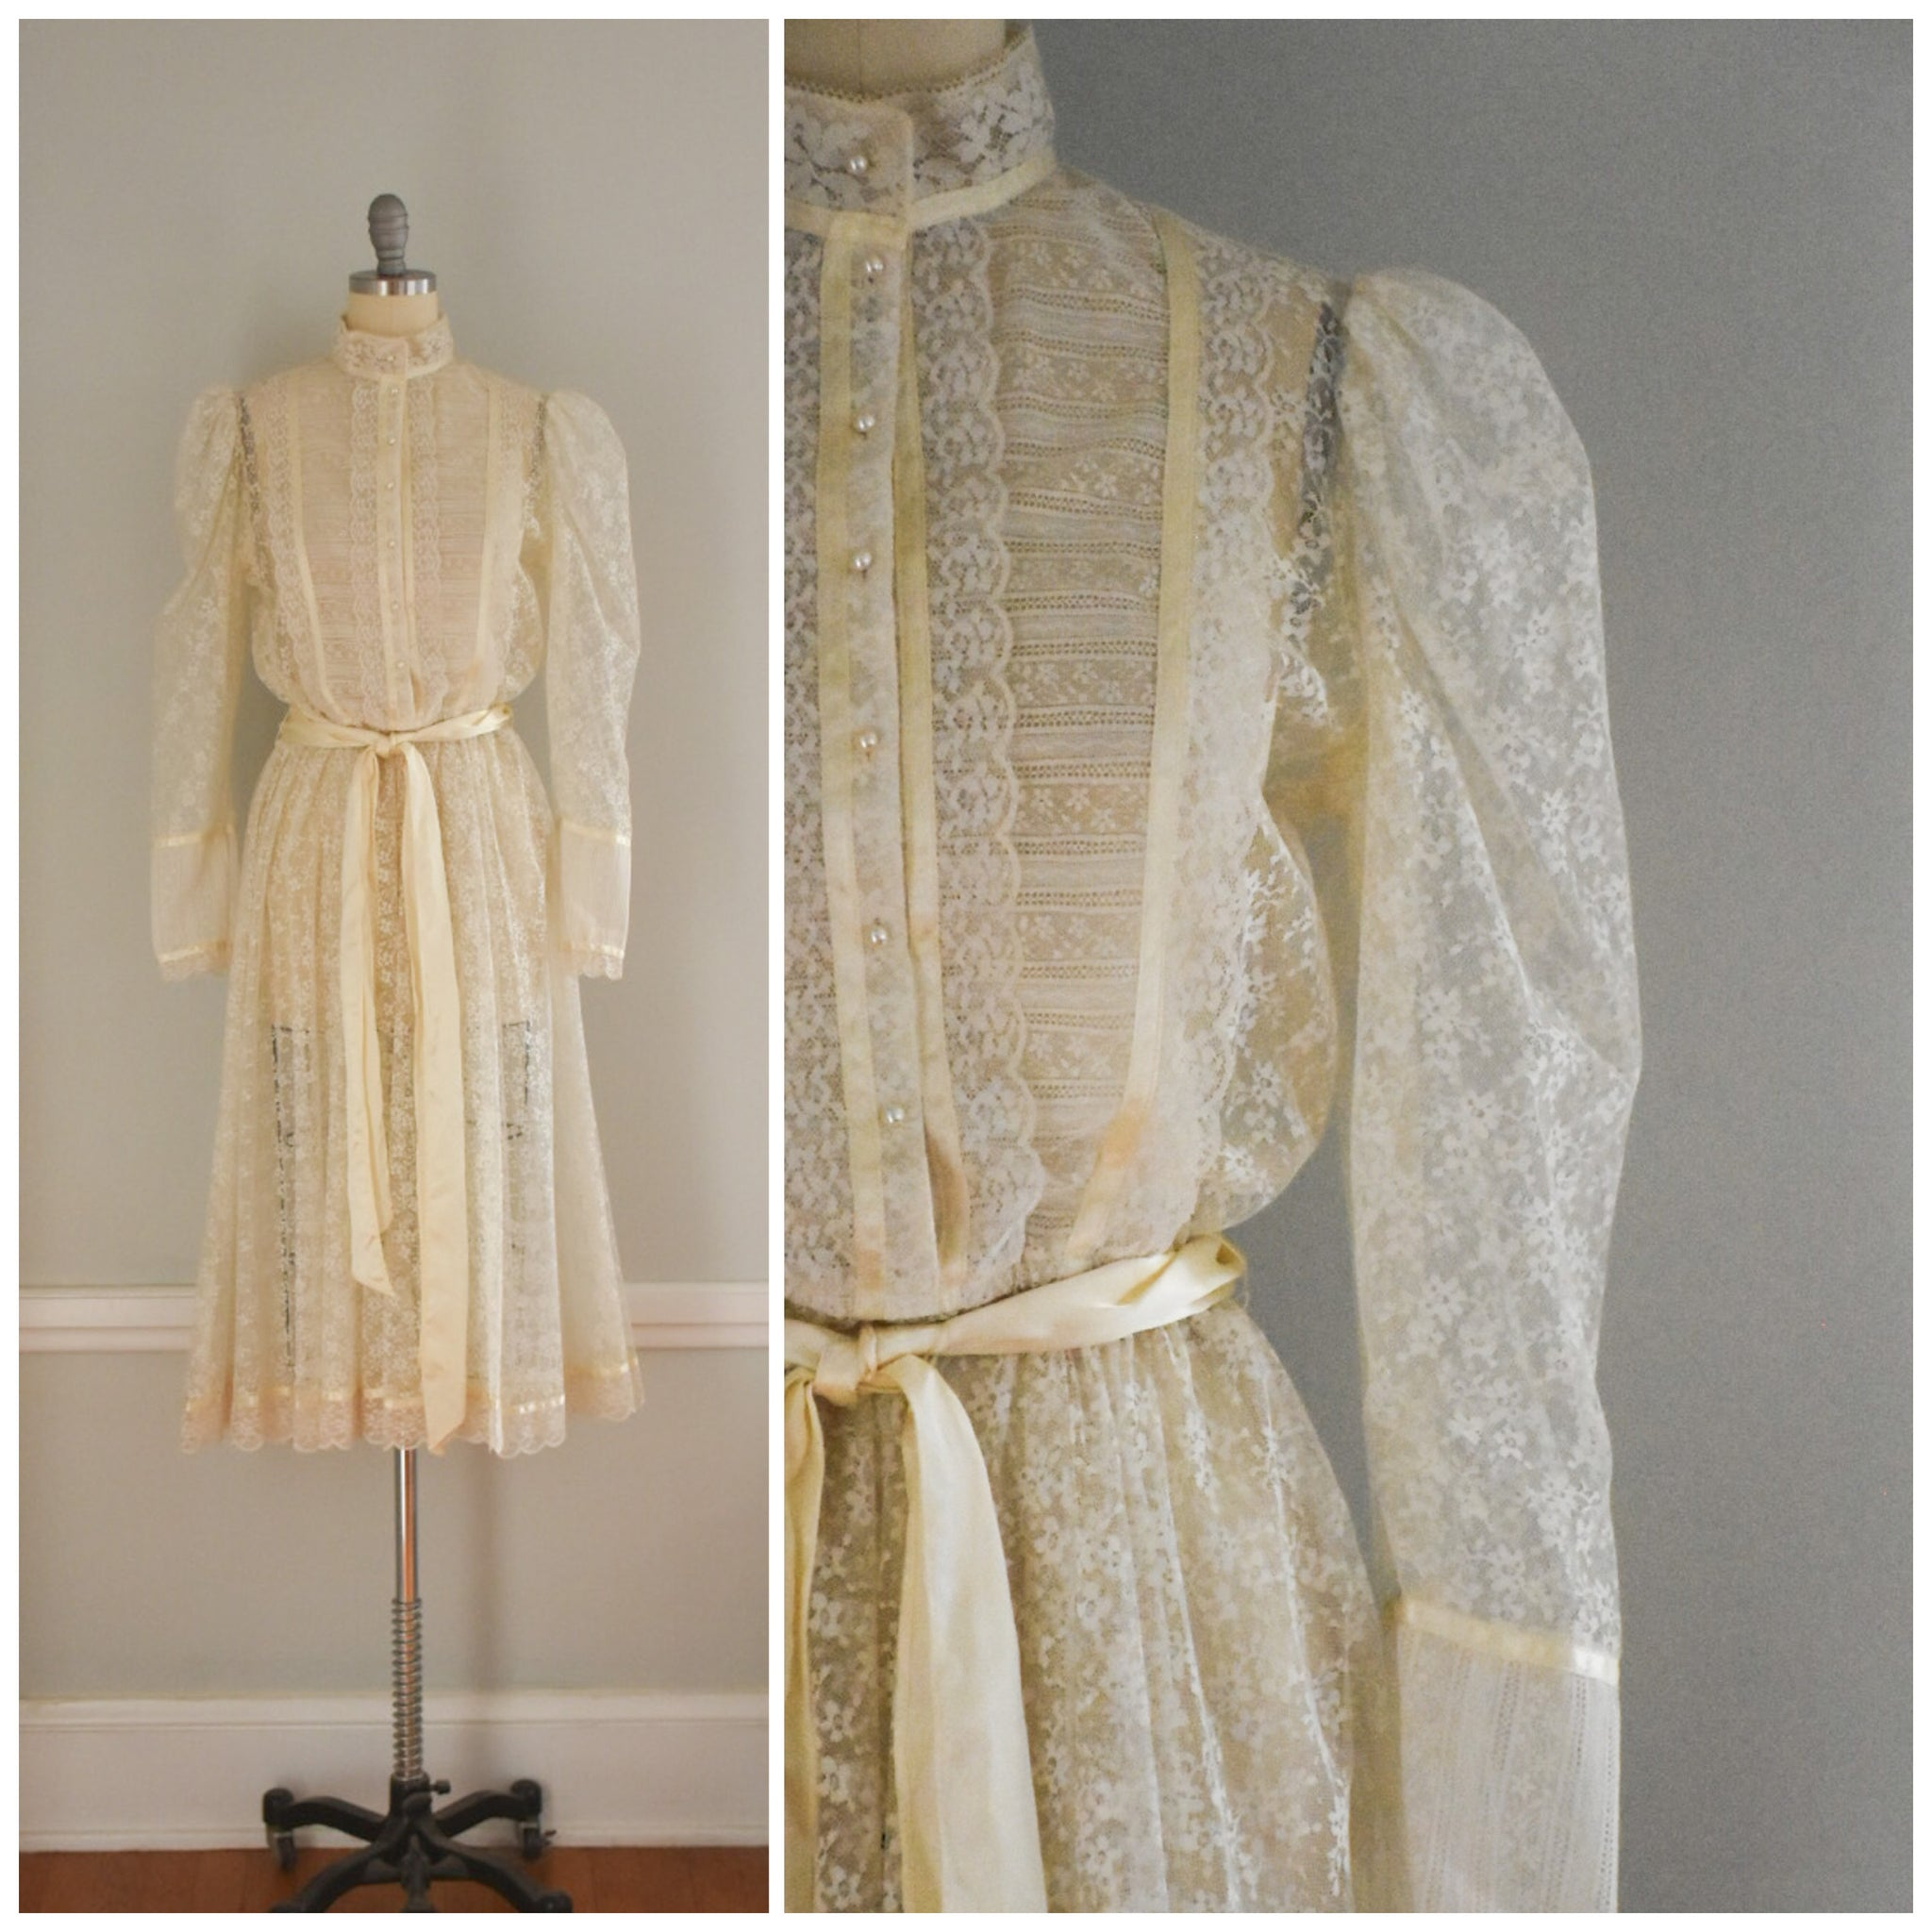 70s Gunne Sax Lace Dress from DuncanLovesTess.com